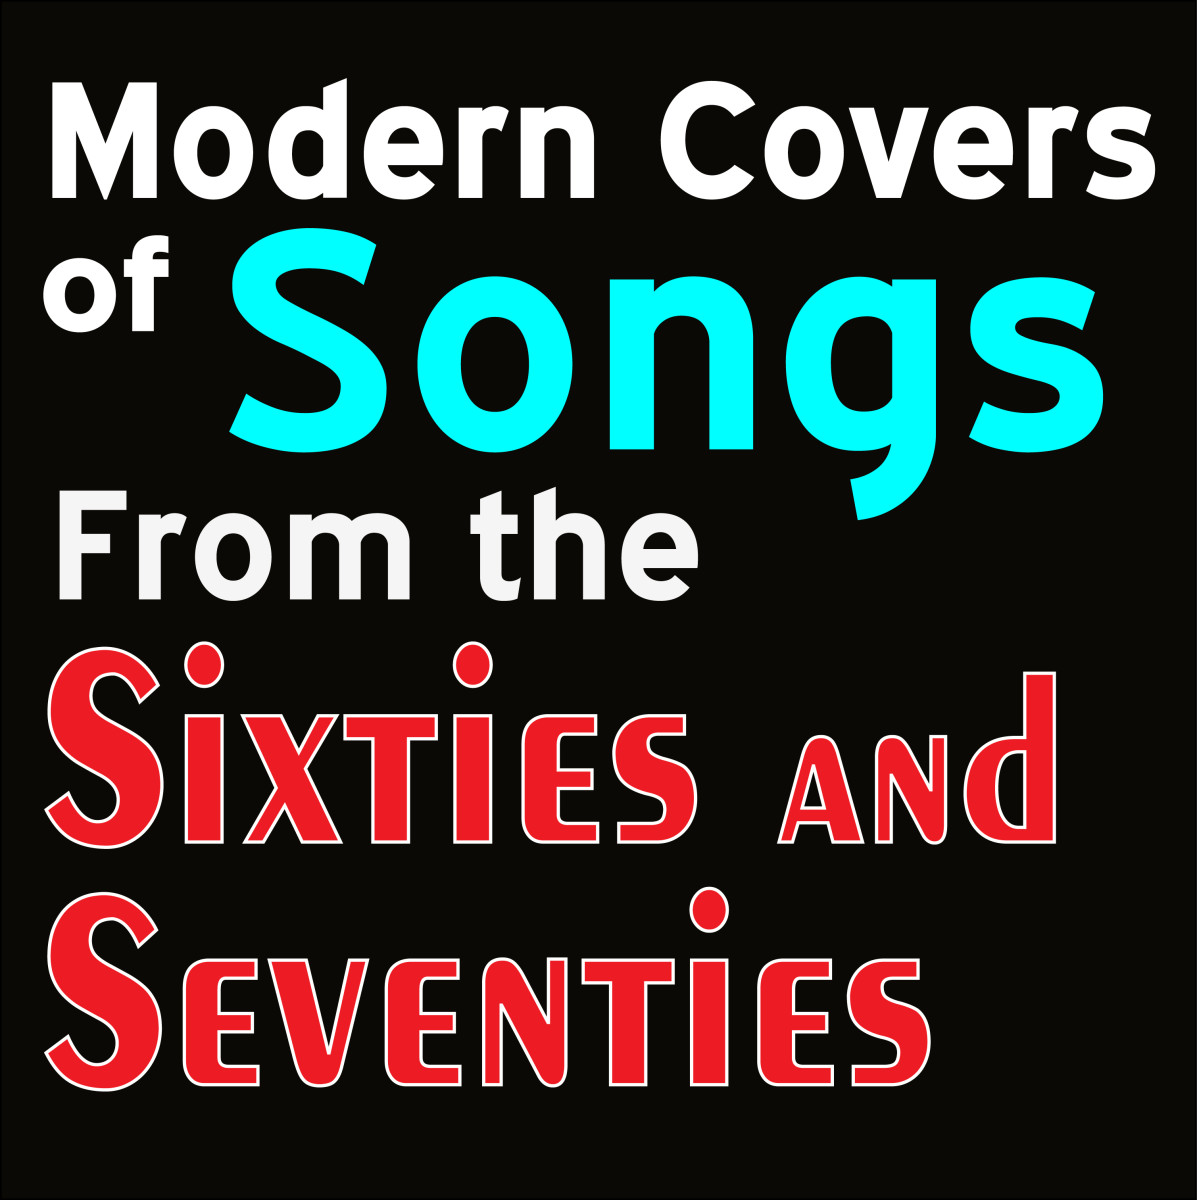 10 Modern Covers of Songs From the Sixties and Seventies